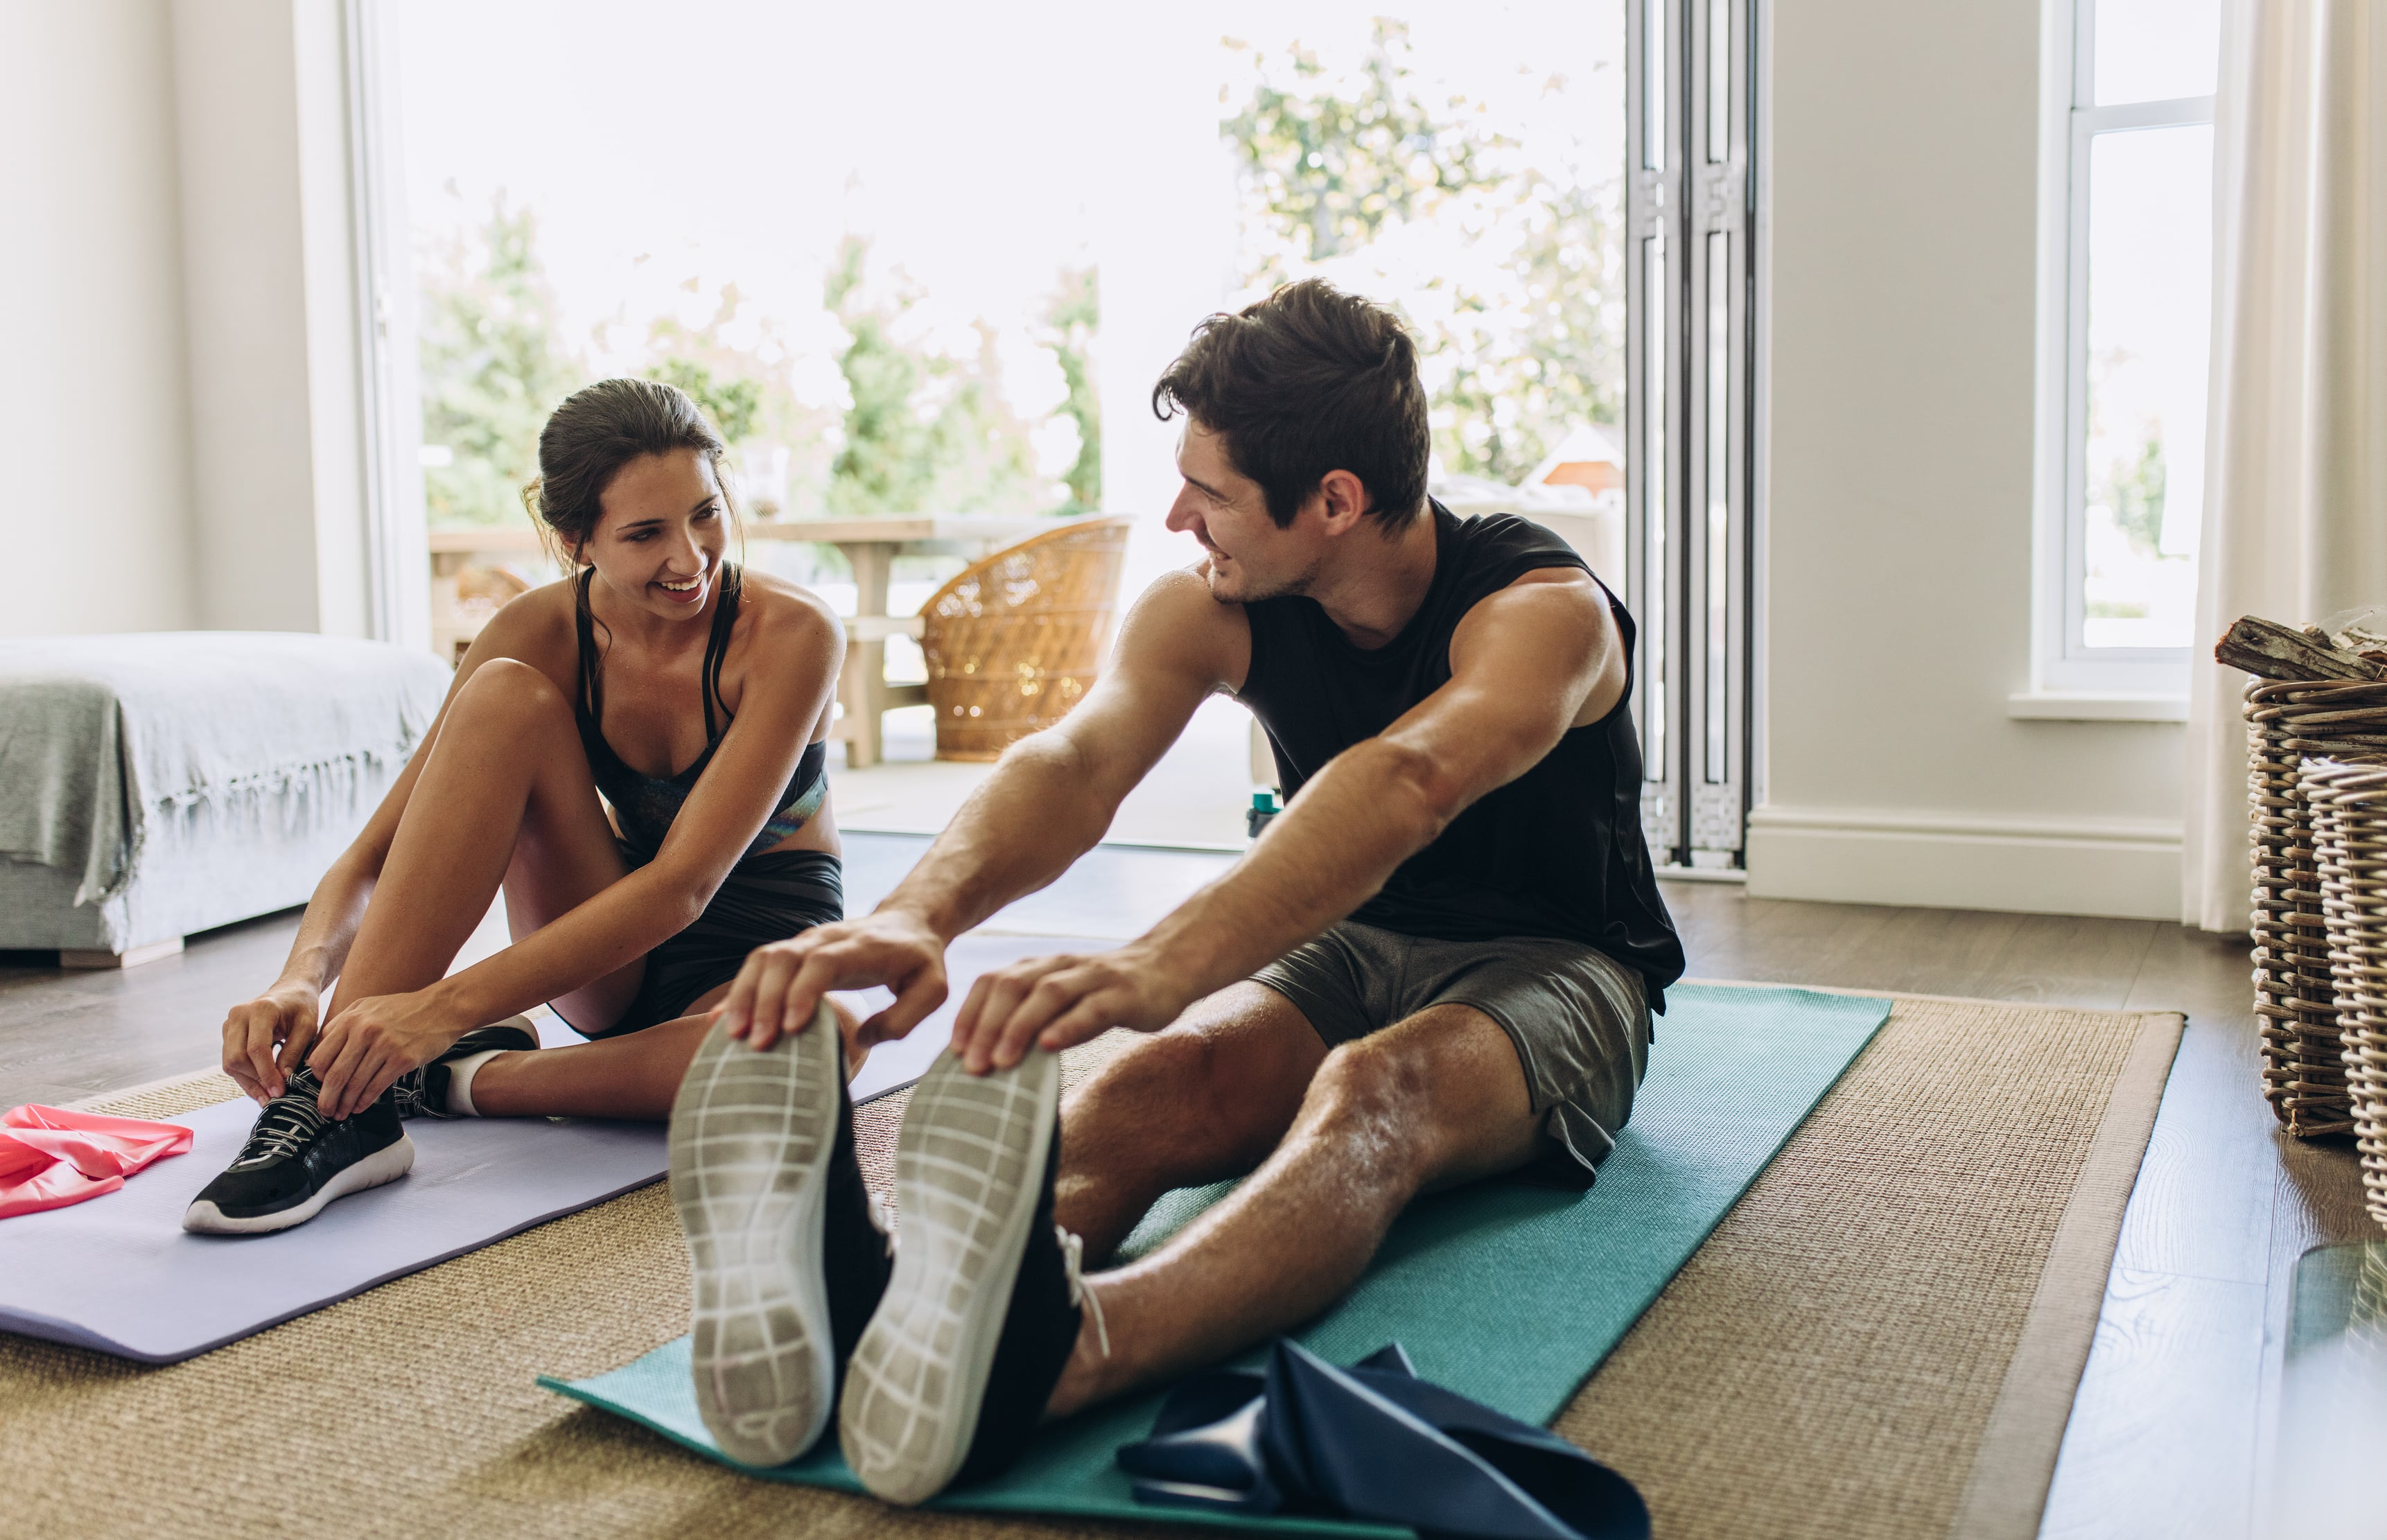 Couple exercising together.